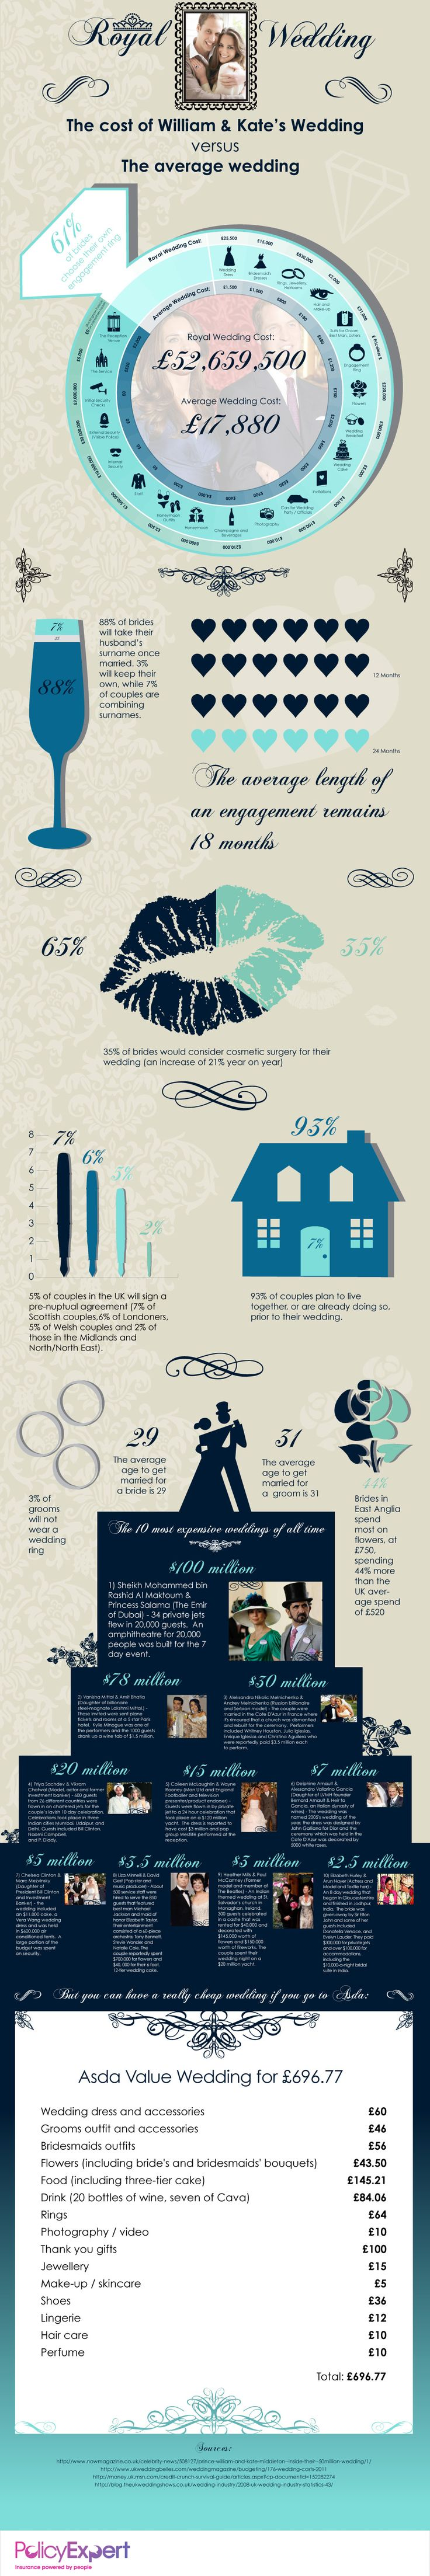 average price for wedding dj in new jersey%0A This infographic compares the cost of William and Kate u    s wedding with the average  wedding in the U  It also provides a list of the most expensive we